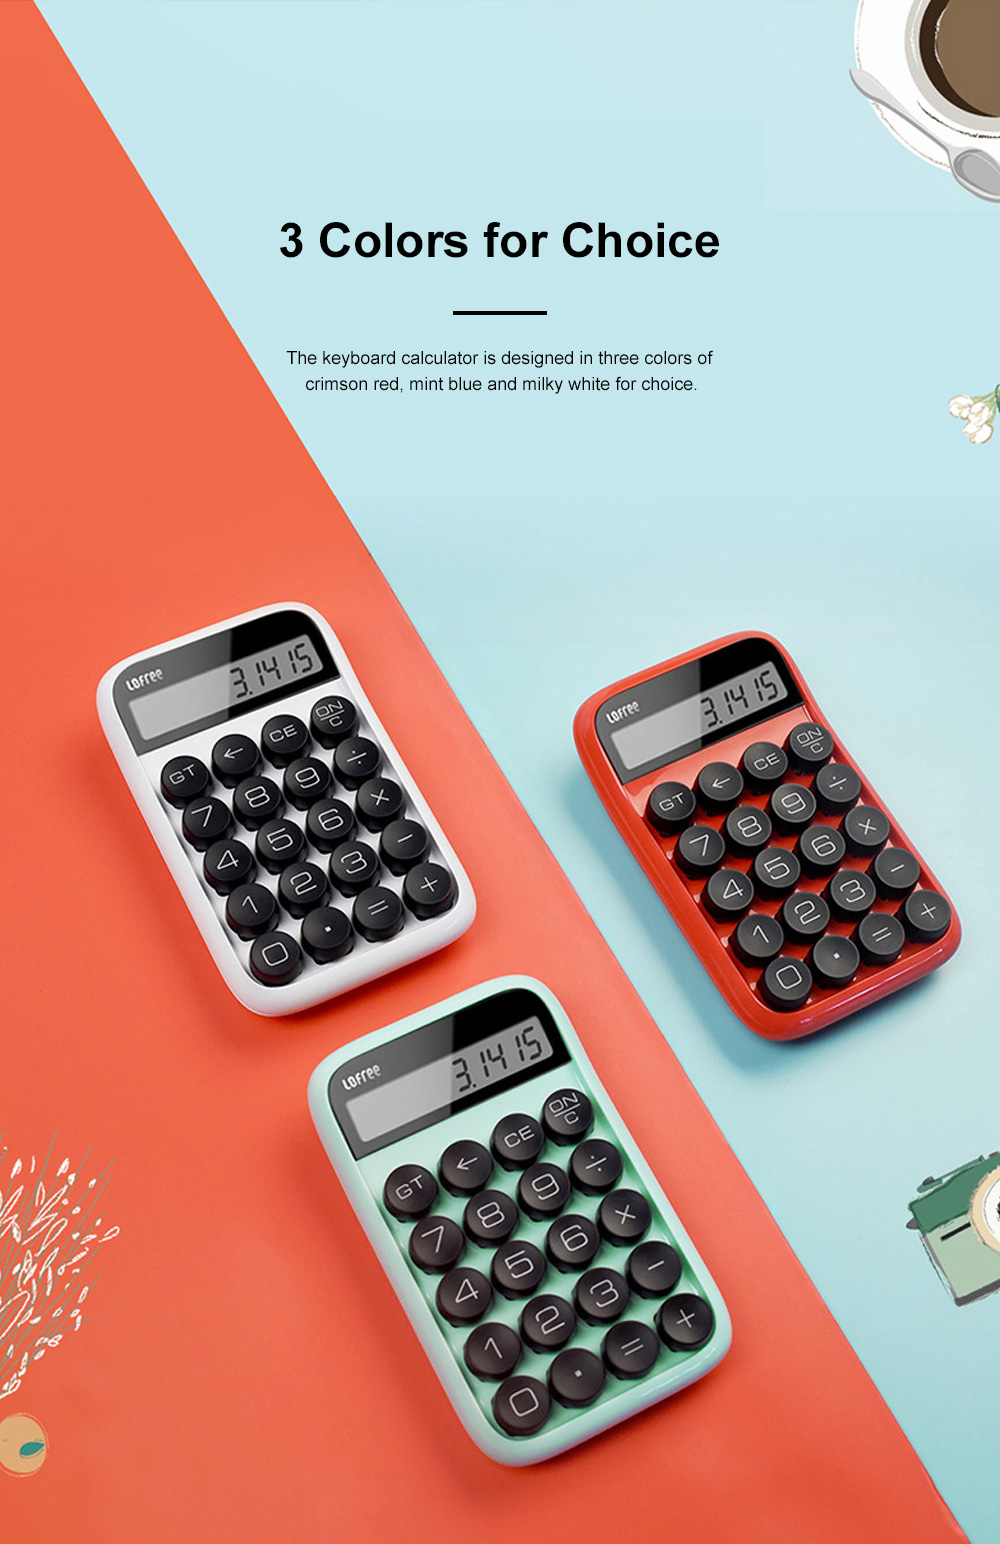 Retro Style Keyboard Calculator for Office Use Mechanical Dot Keycap Key Calculator Stylish Durable Calculator 5